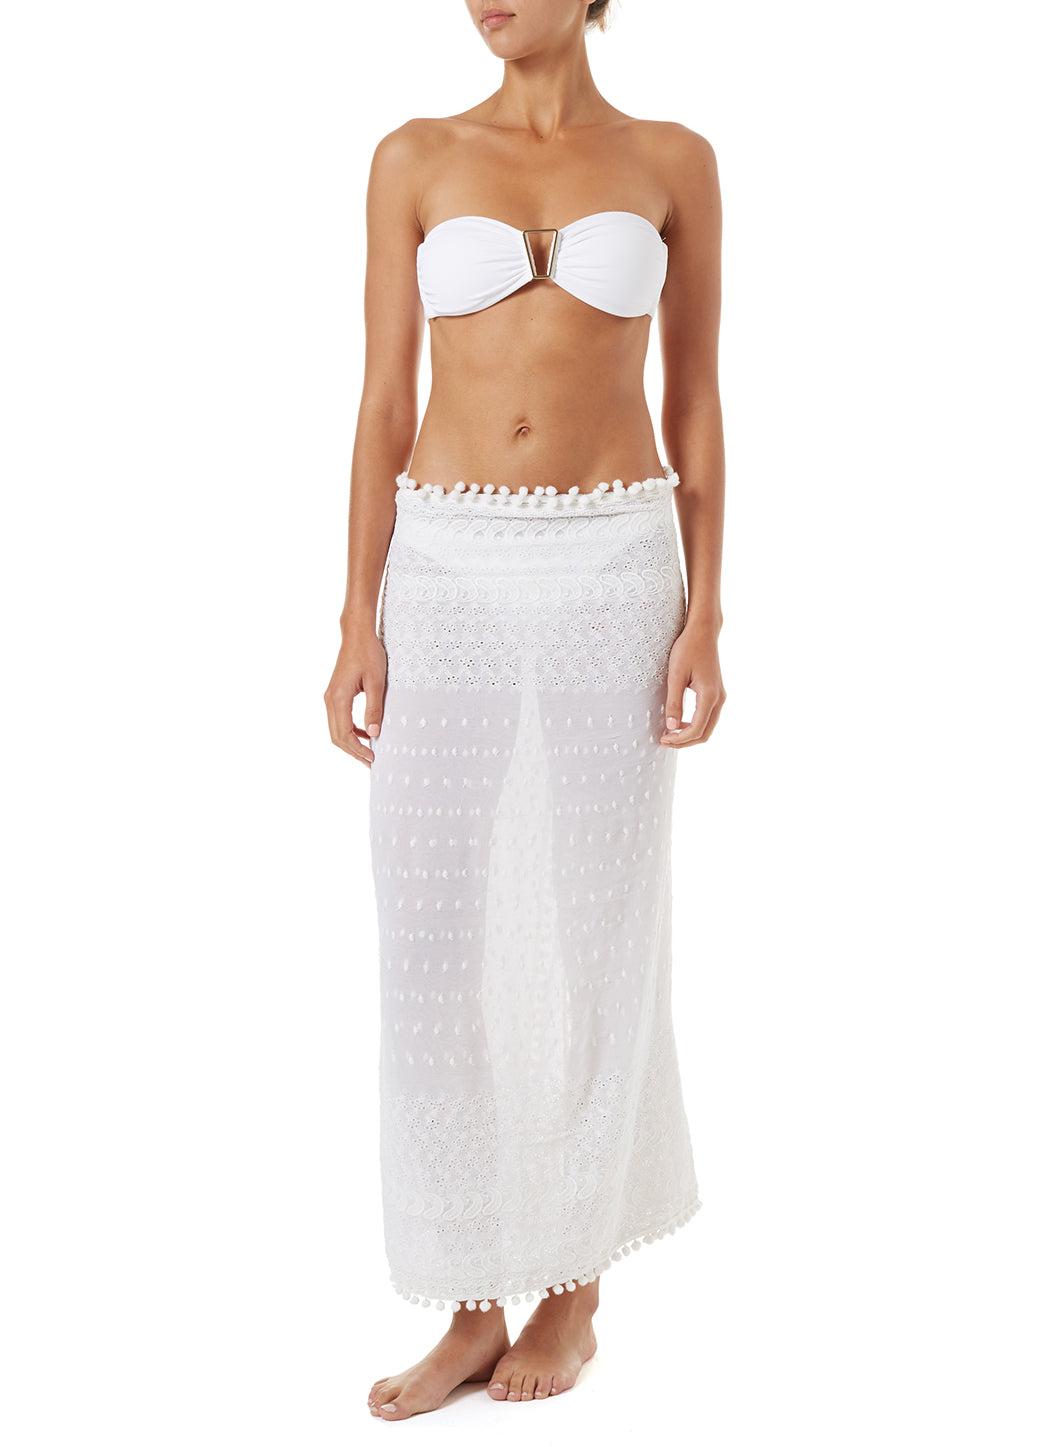 Pareo White Embroidered Multi-Way Cover Up